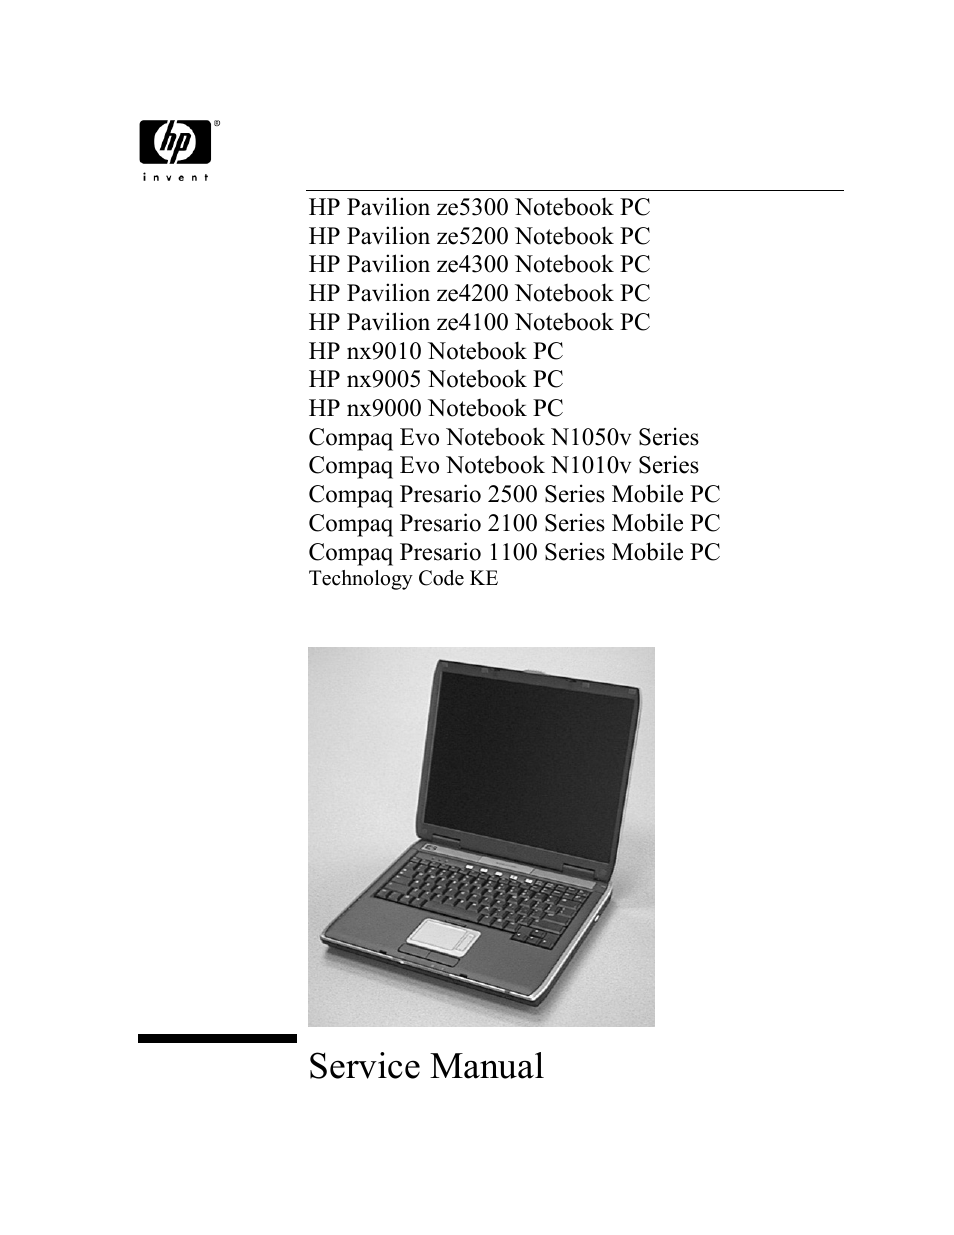 HP Pavilion ze5300 User Manual | 188 pages | Also for: Pavilion ze5200,  Pavilion ze4300, Pavilion ze4200, PAVILION ZE4100, nx9010, nx9005, nx9000,  ...